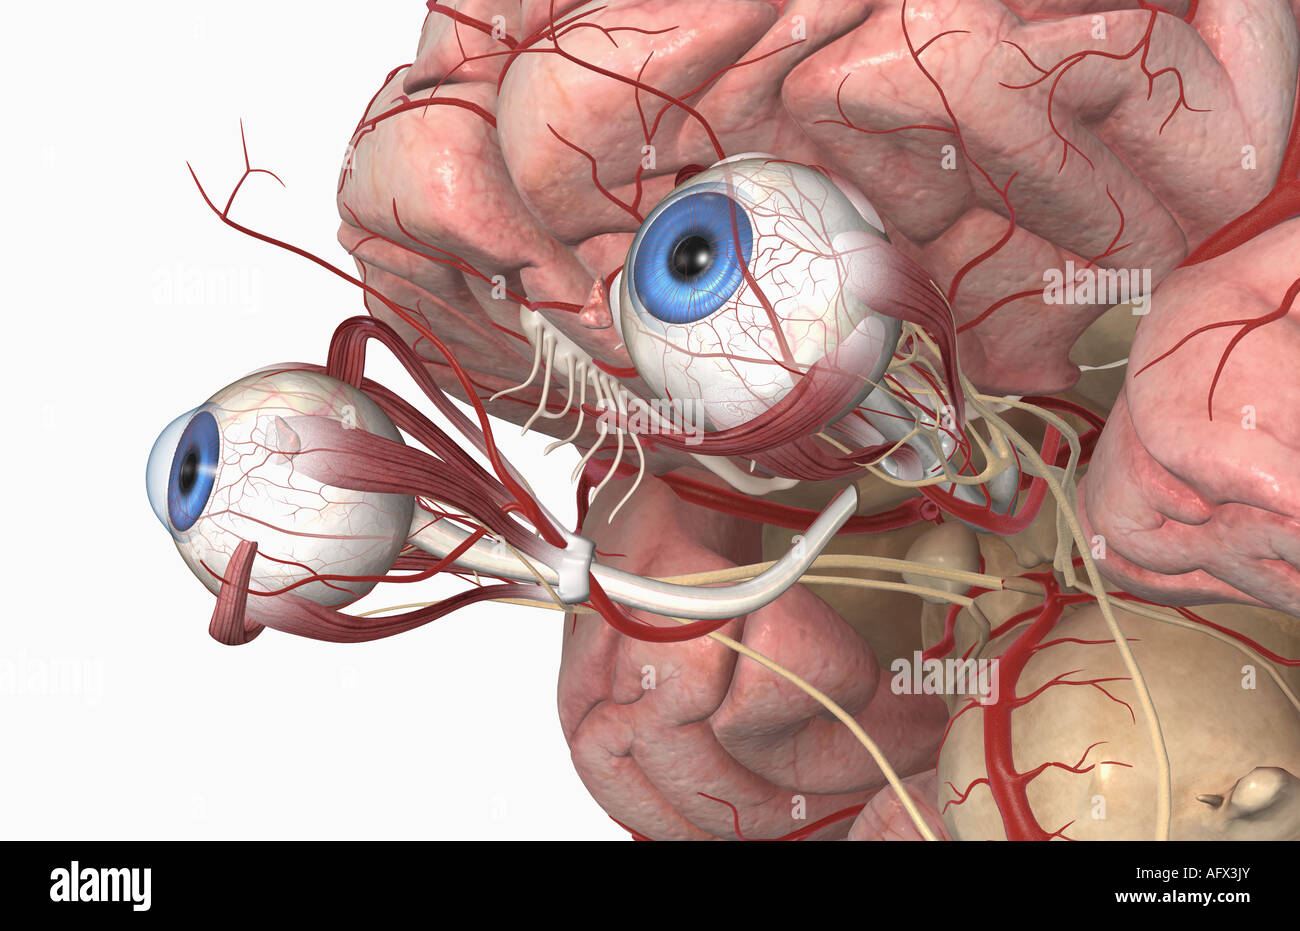 The arteries of the brain and eyes Stock Photo: 14031698 - Alamy